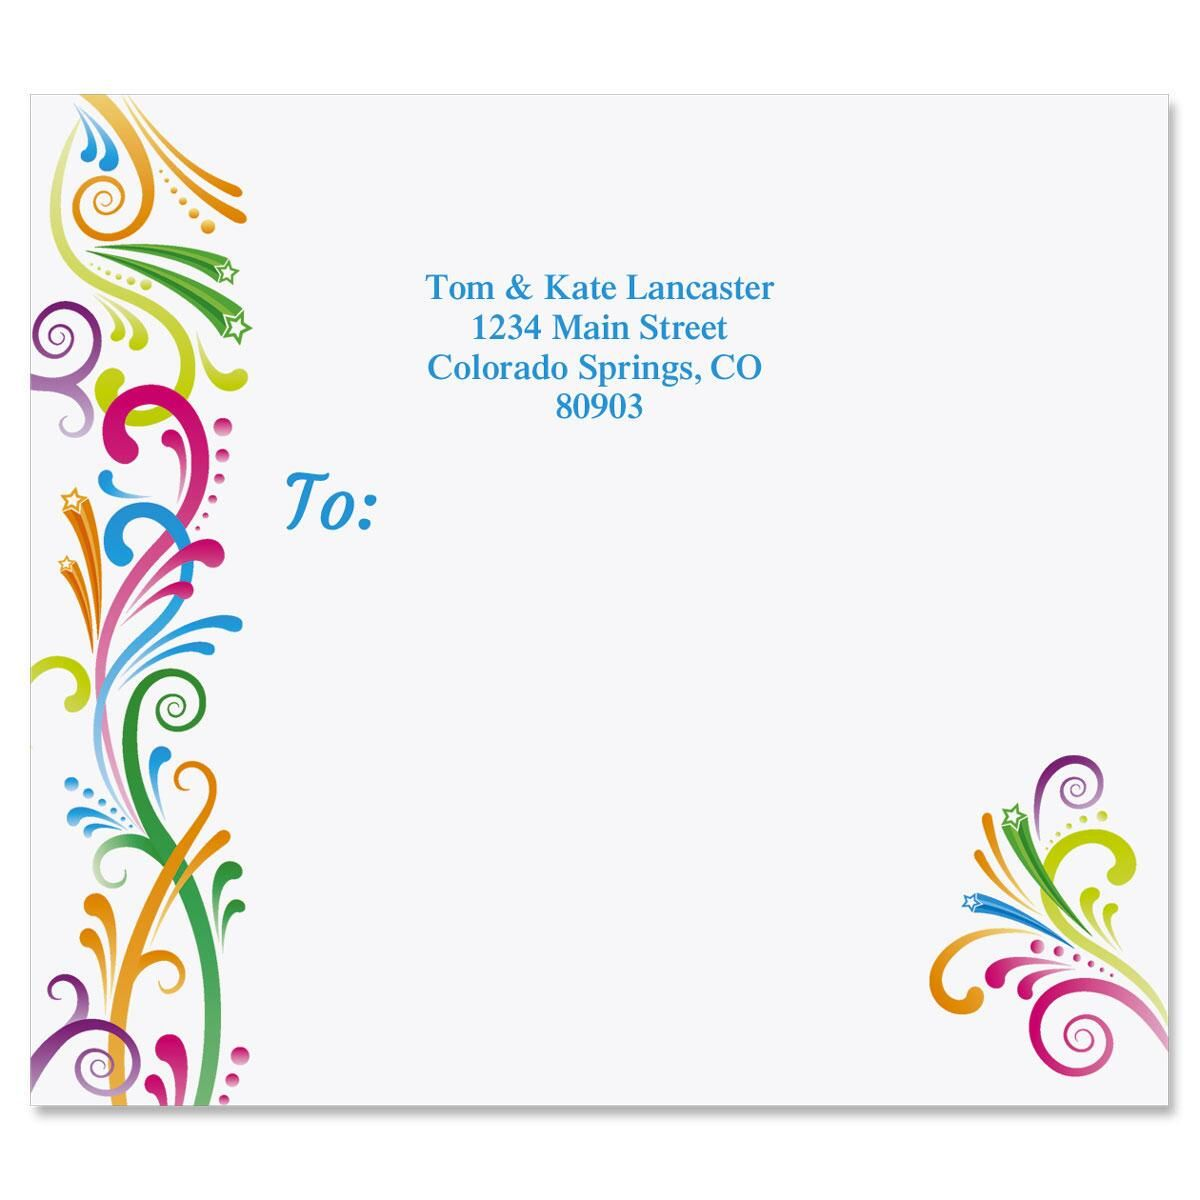 Party Spirit Mailing Package Label